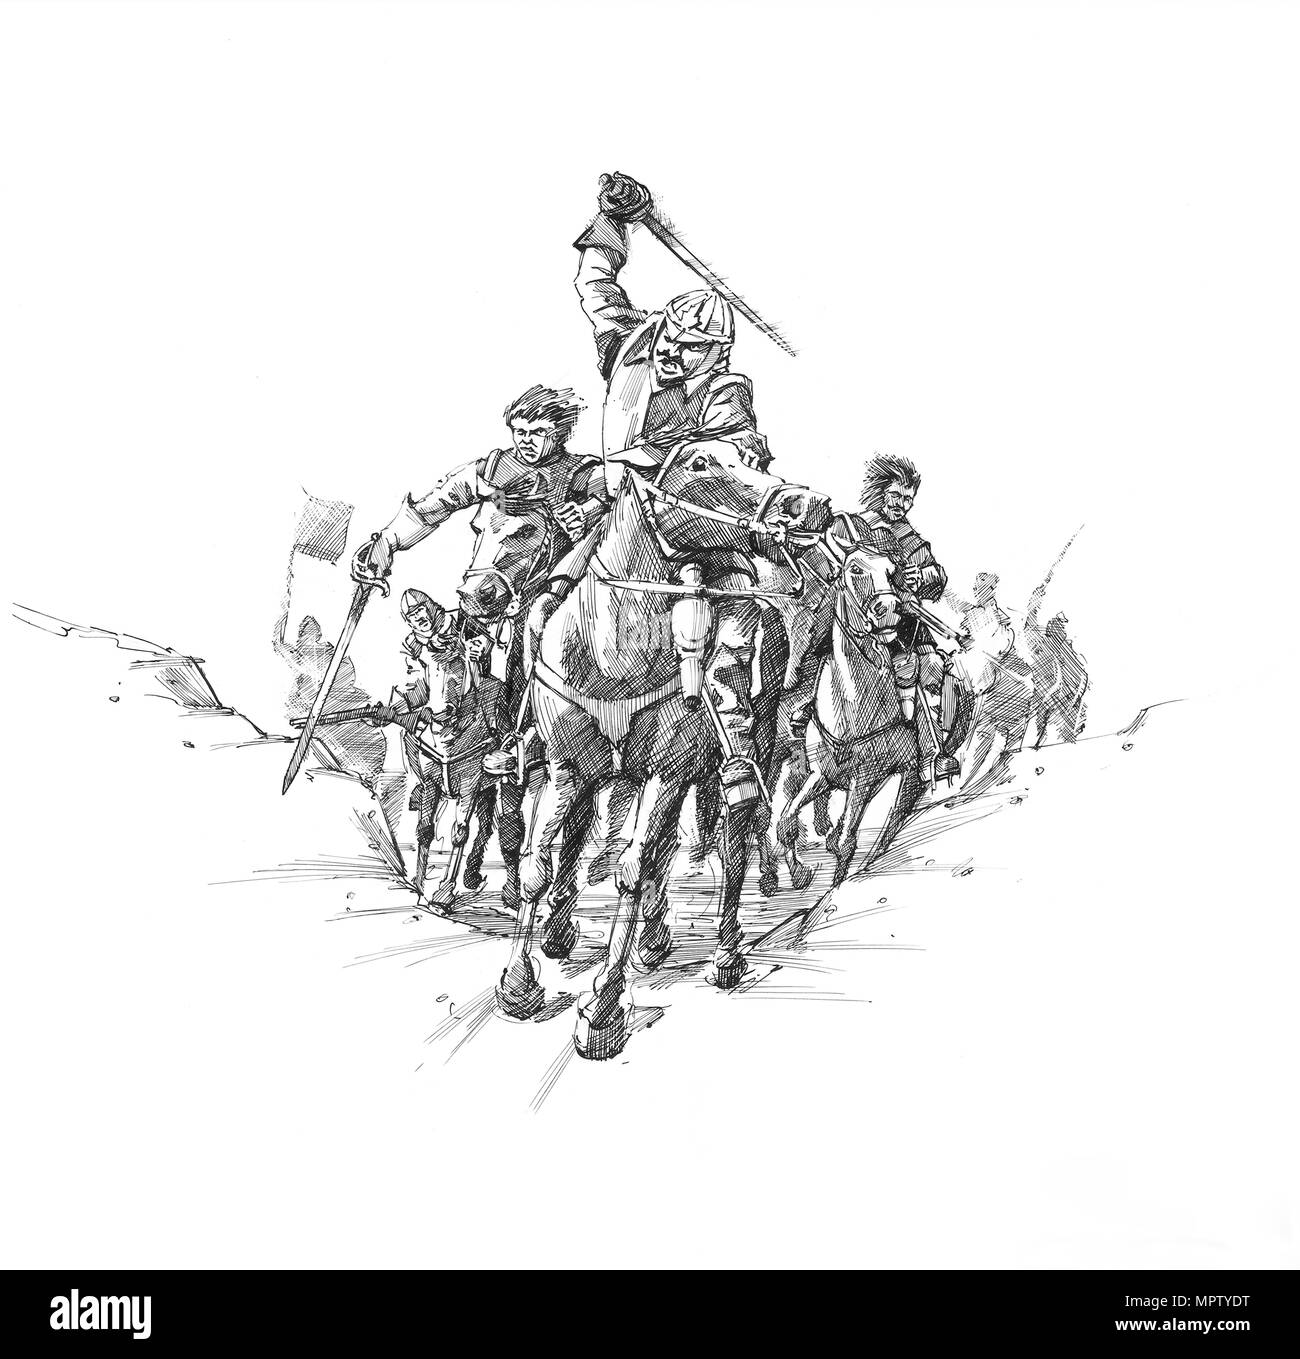 Scottish cavalry, Battle of Newburn Ford, 1640. Artist: Peter Dunn. - Stock Image